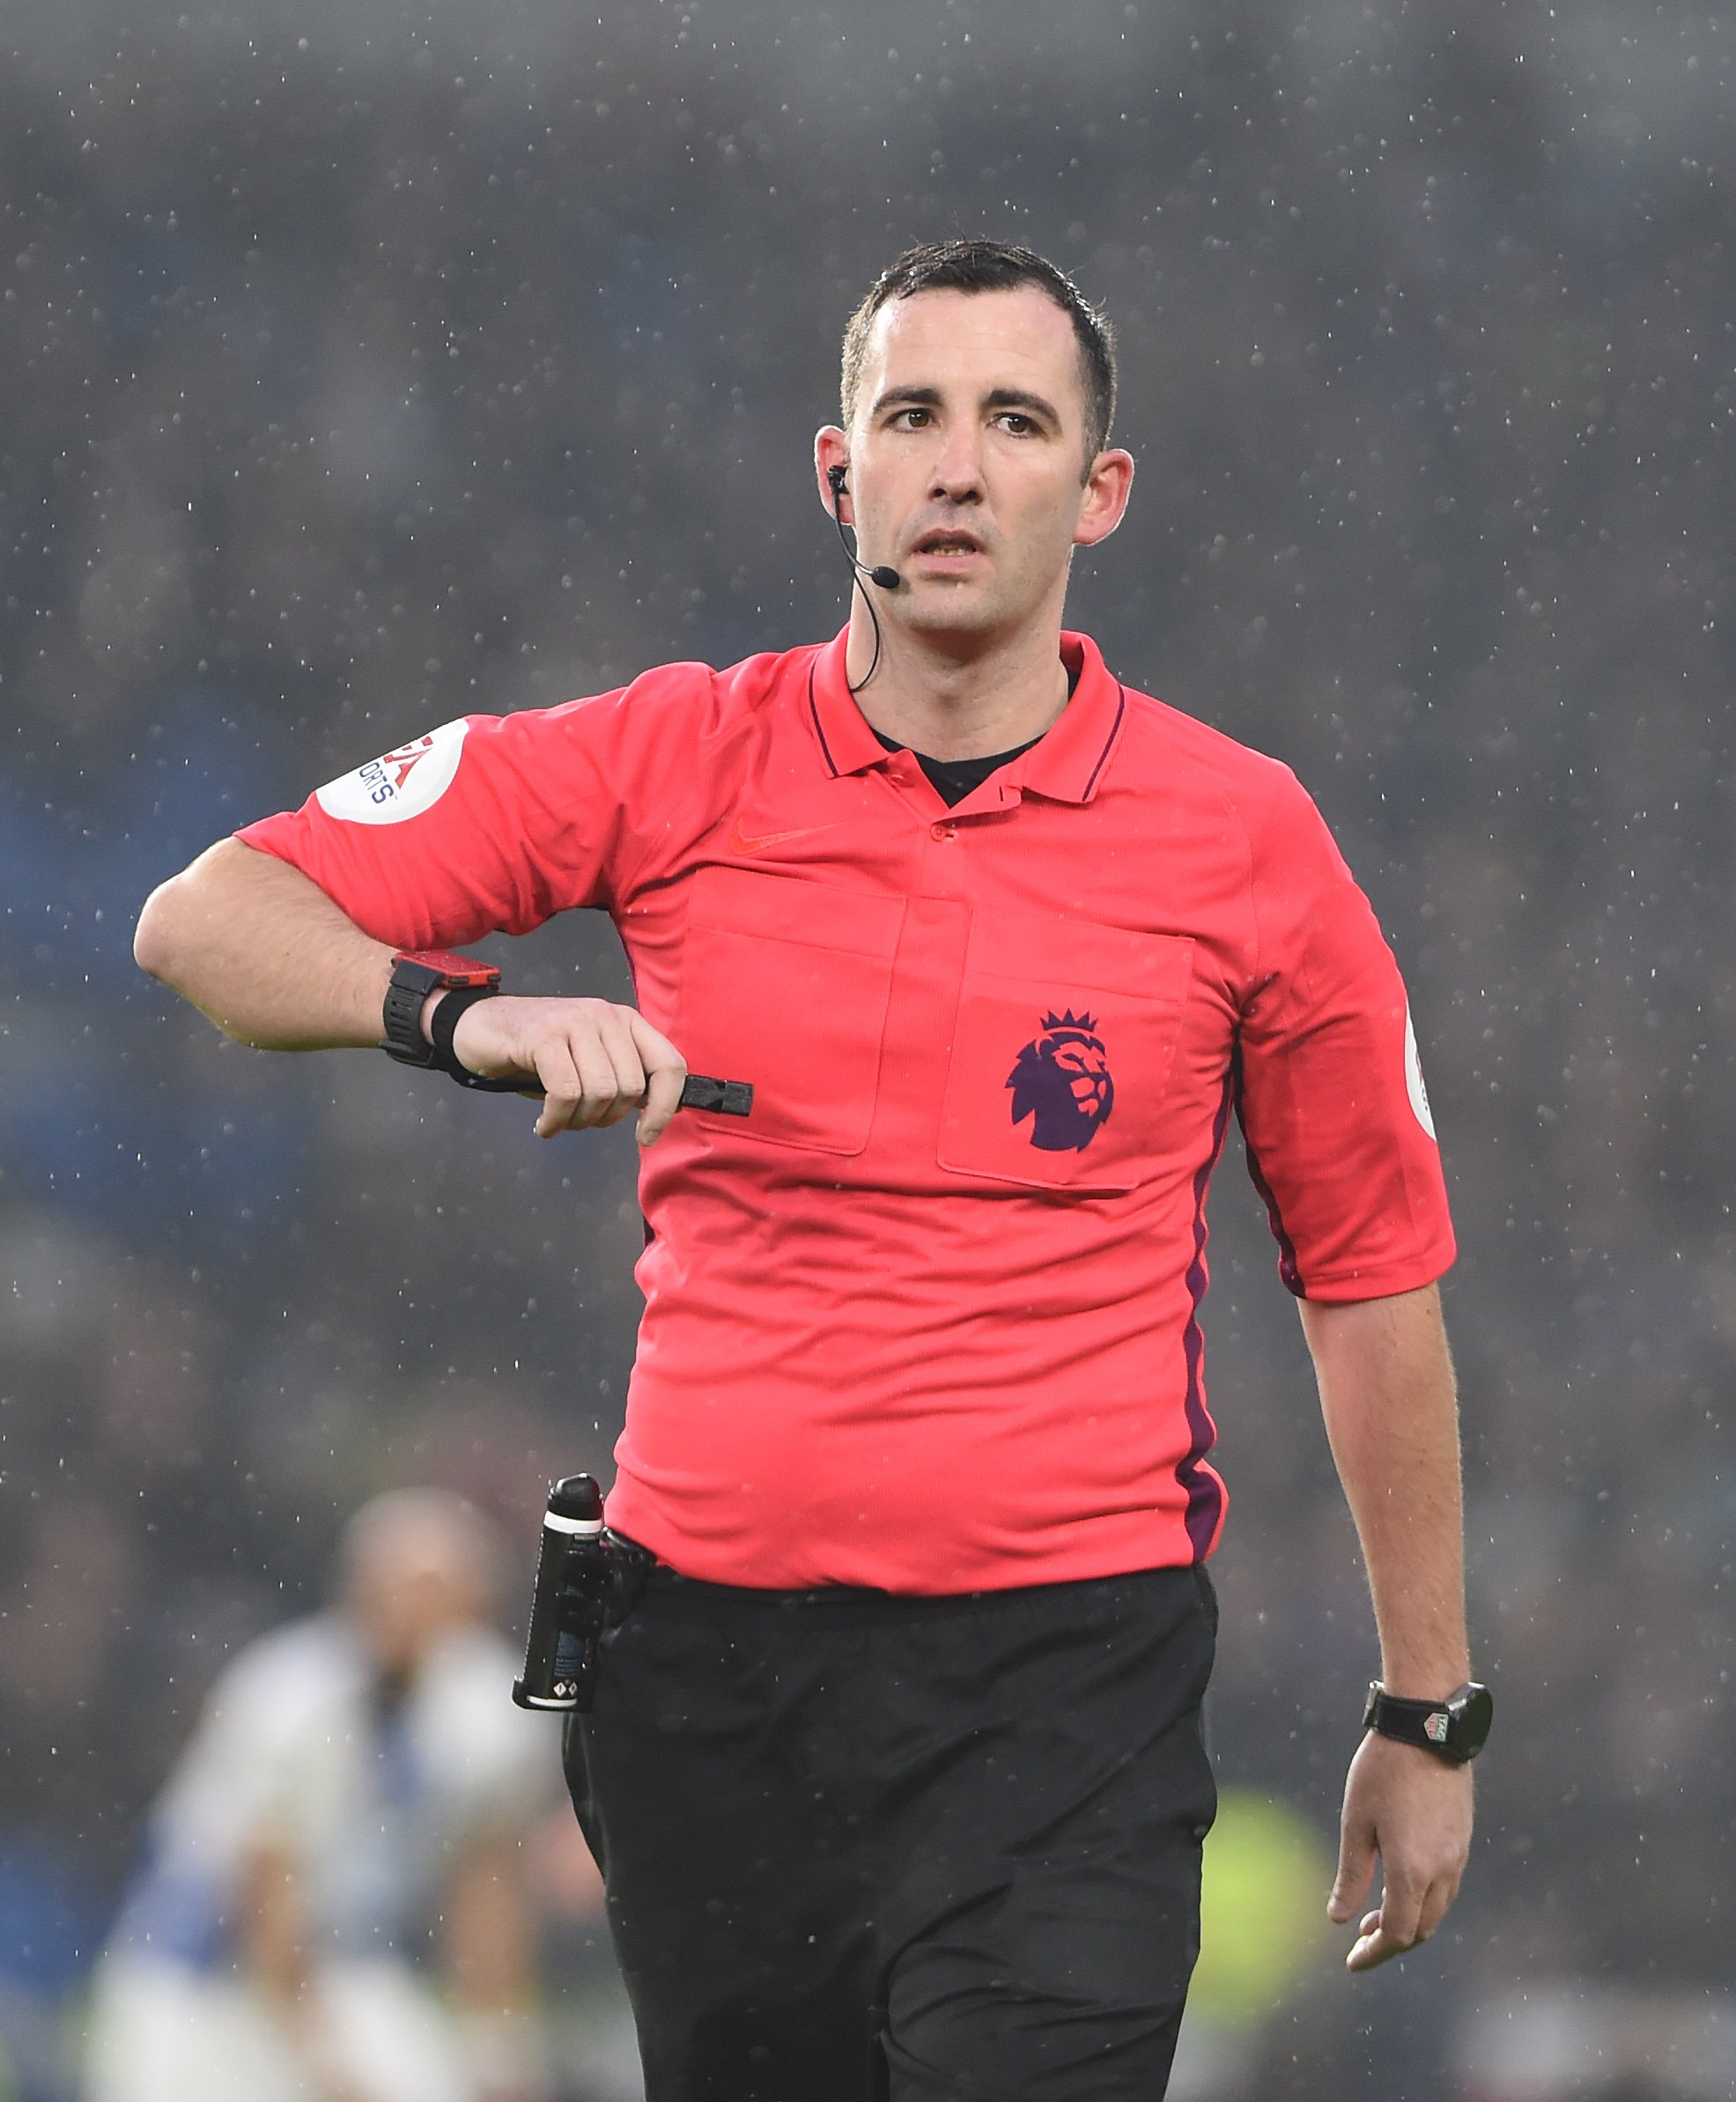 Cup shock referee to take charge at Den